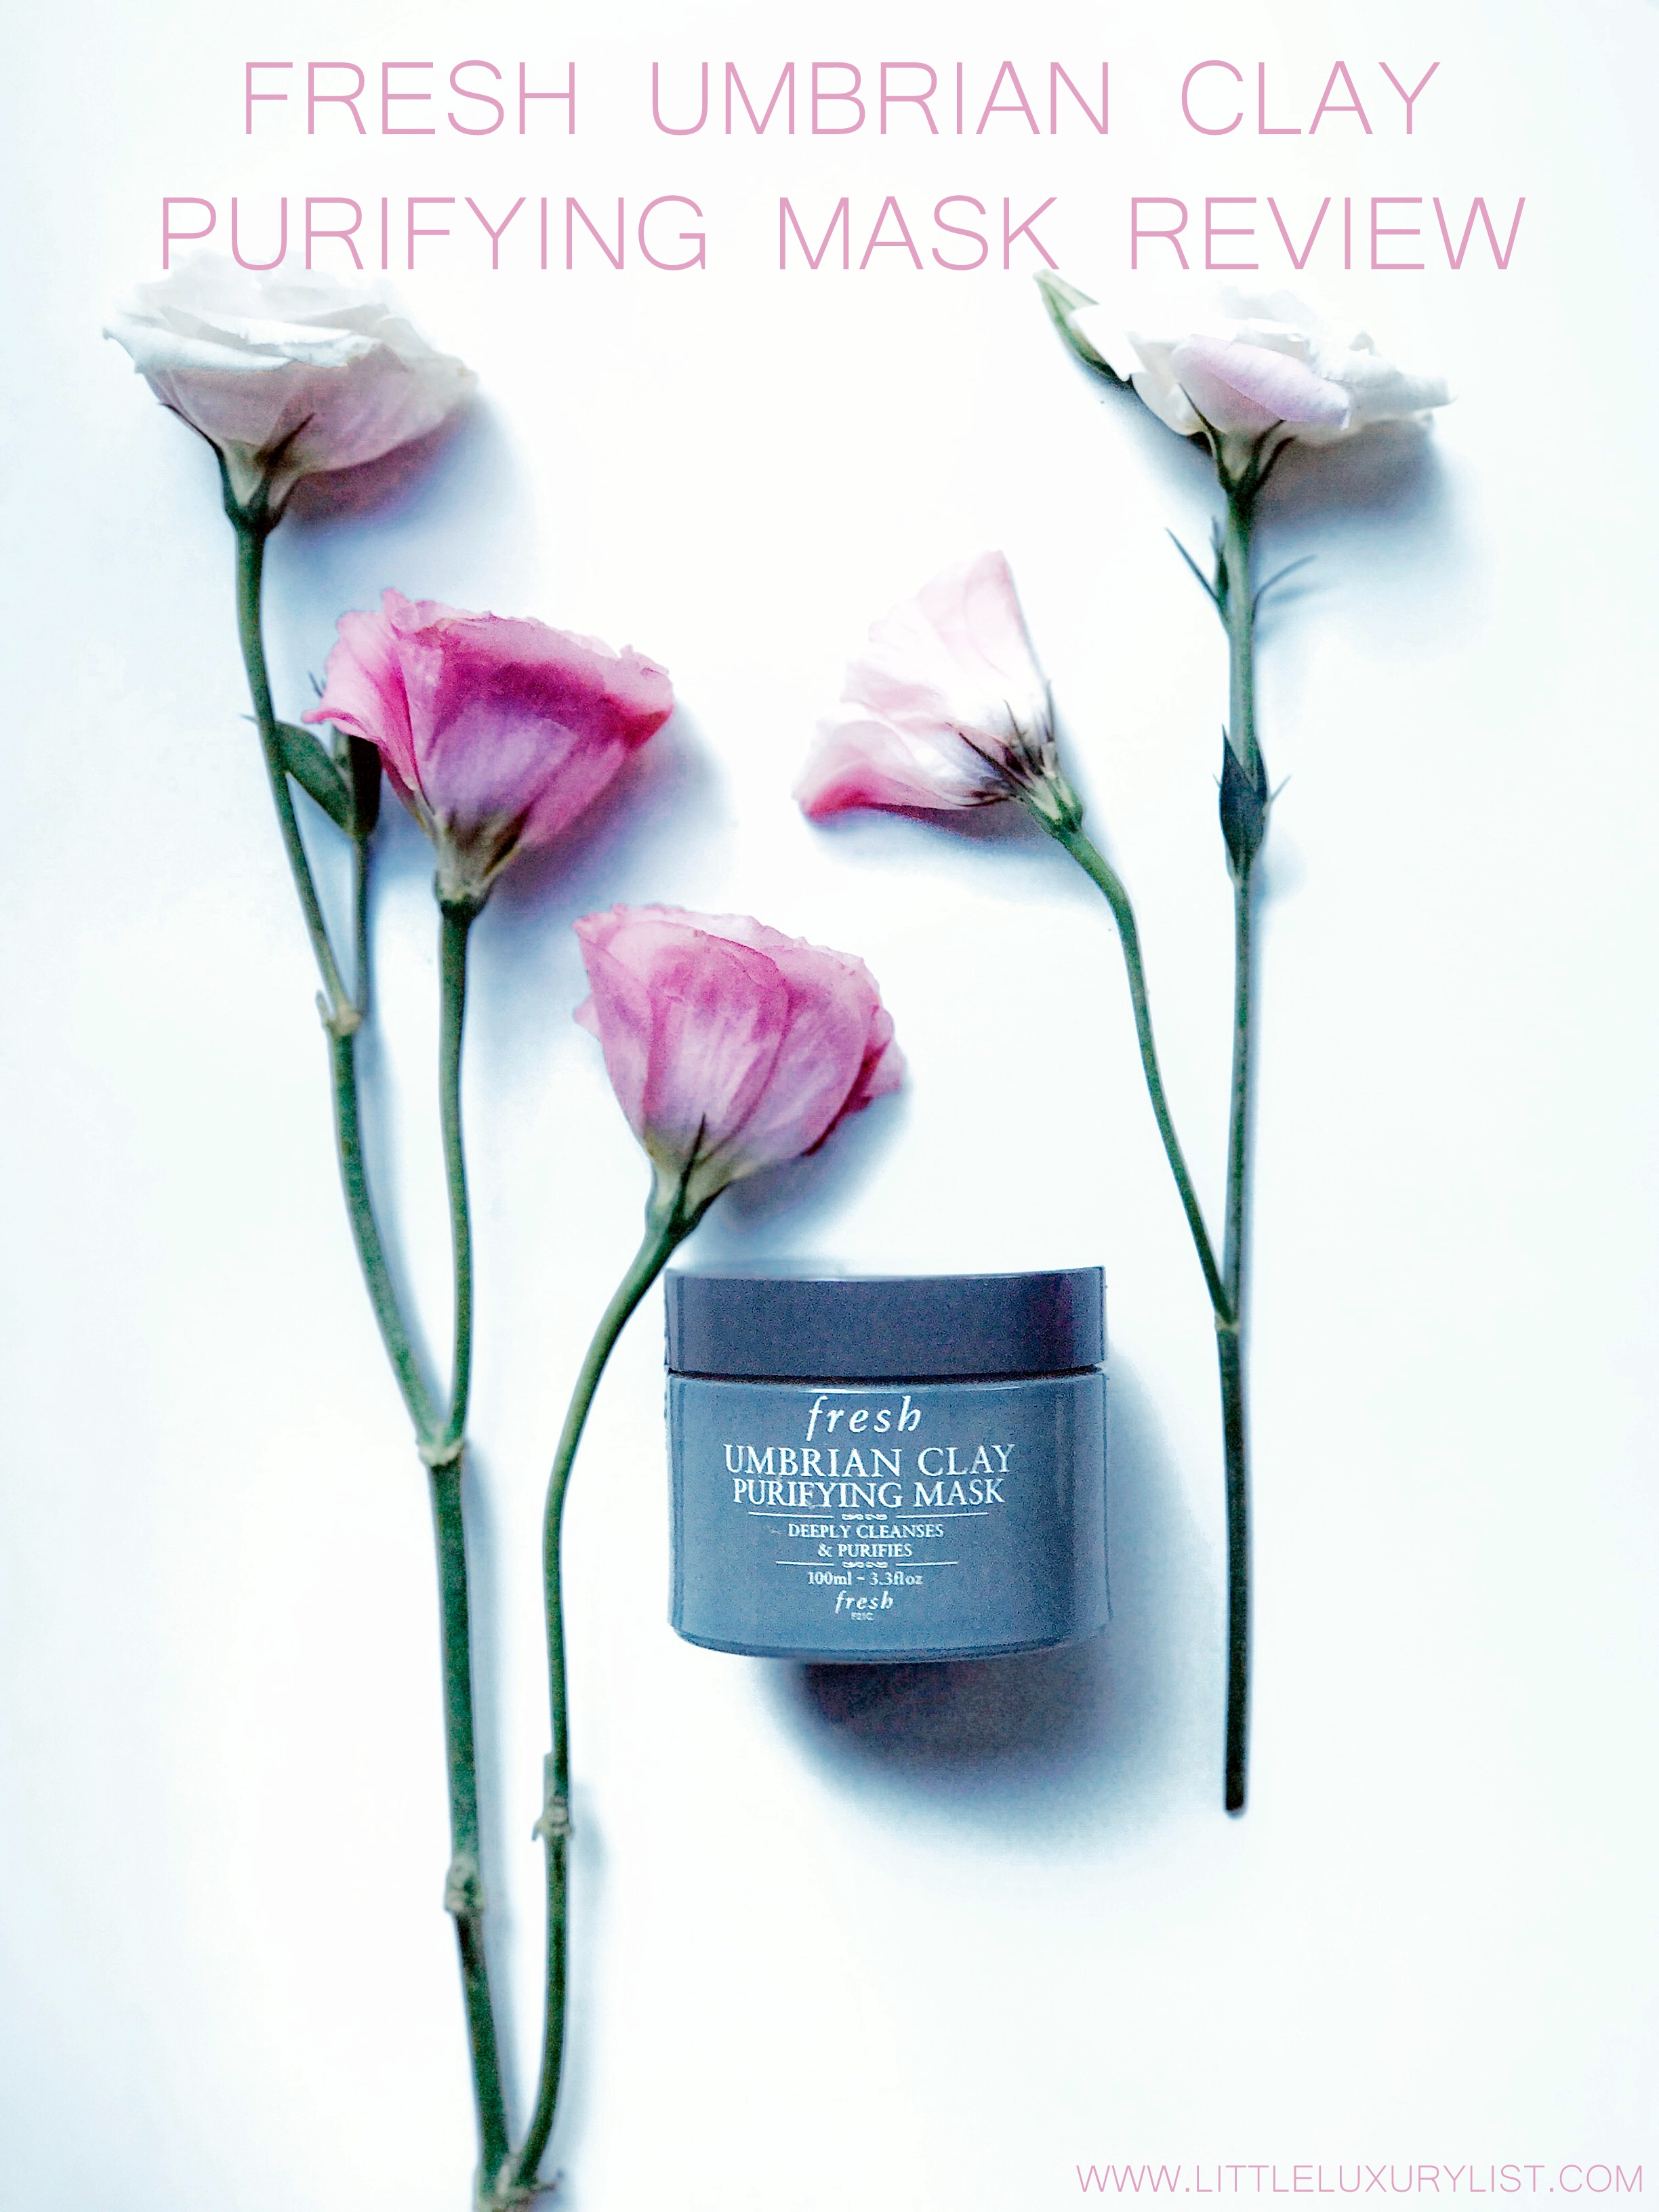 Fresh Umbrian Clay purifying mask with roses portrait view